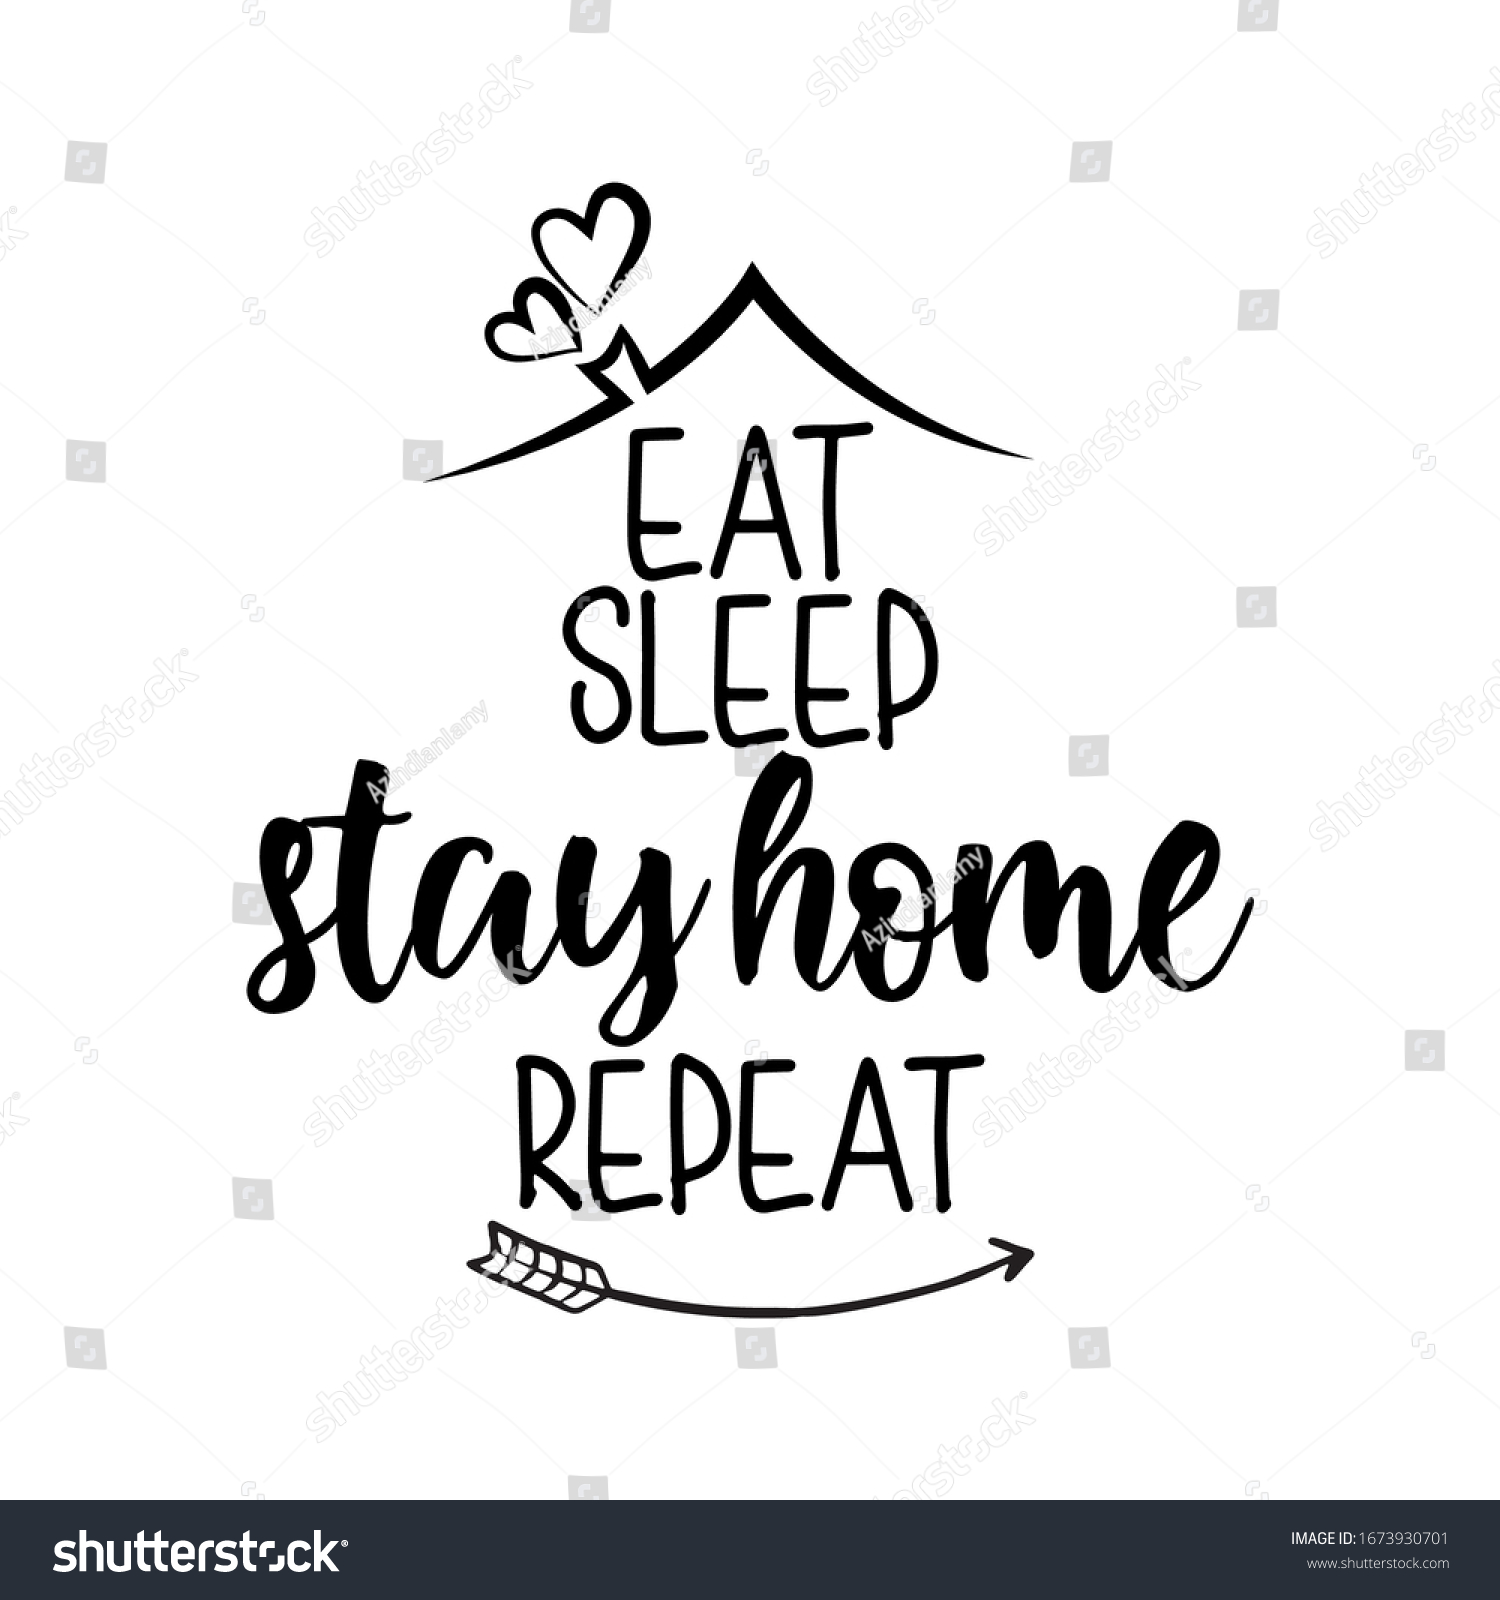 Eat sleep stay home repeat - Lettering inspiring typography poster with text and arrow. Hand letter script motivation sign catch word art design. Vintage style monochrome illustration. Home quarantine